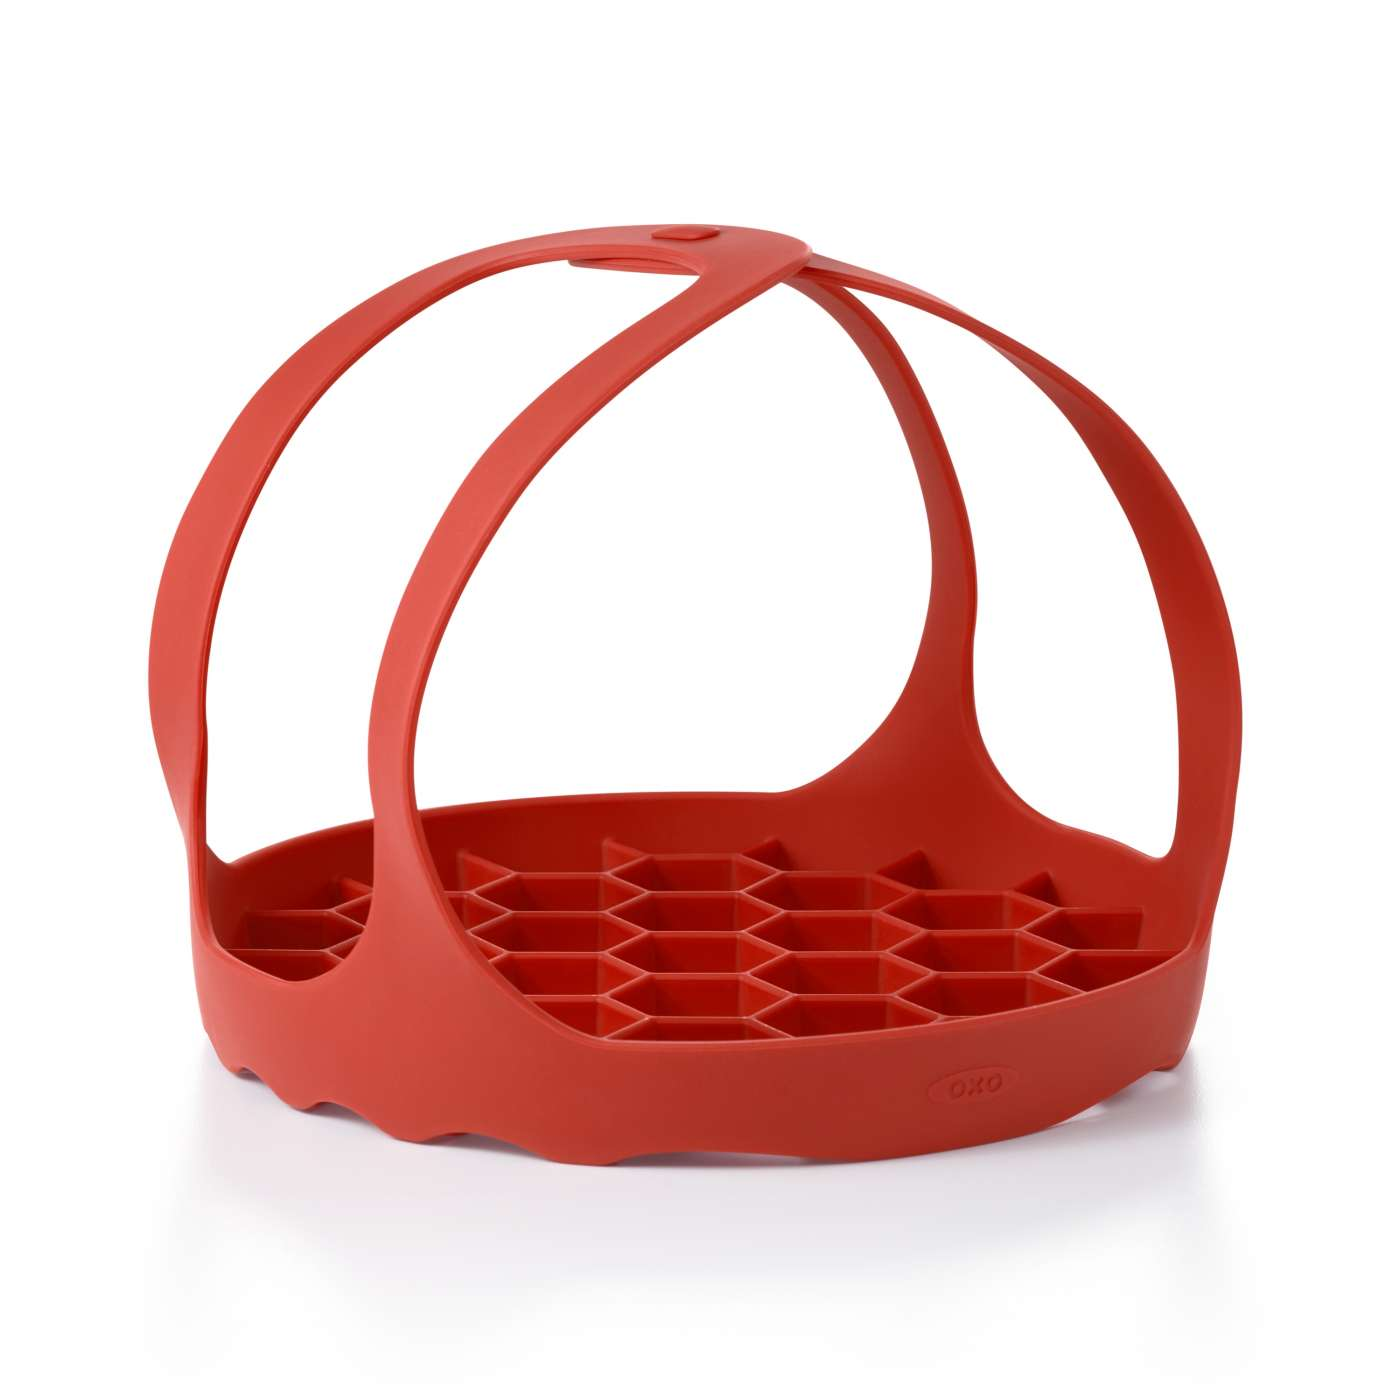 OXO Silicone Pressure Cooker Sling - red color